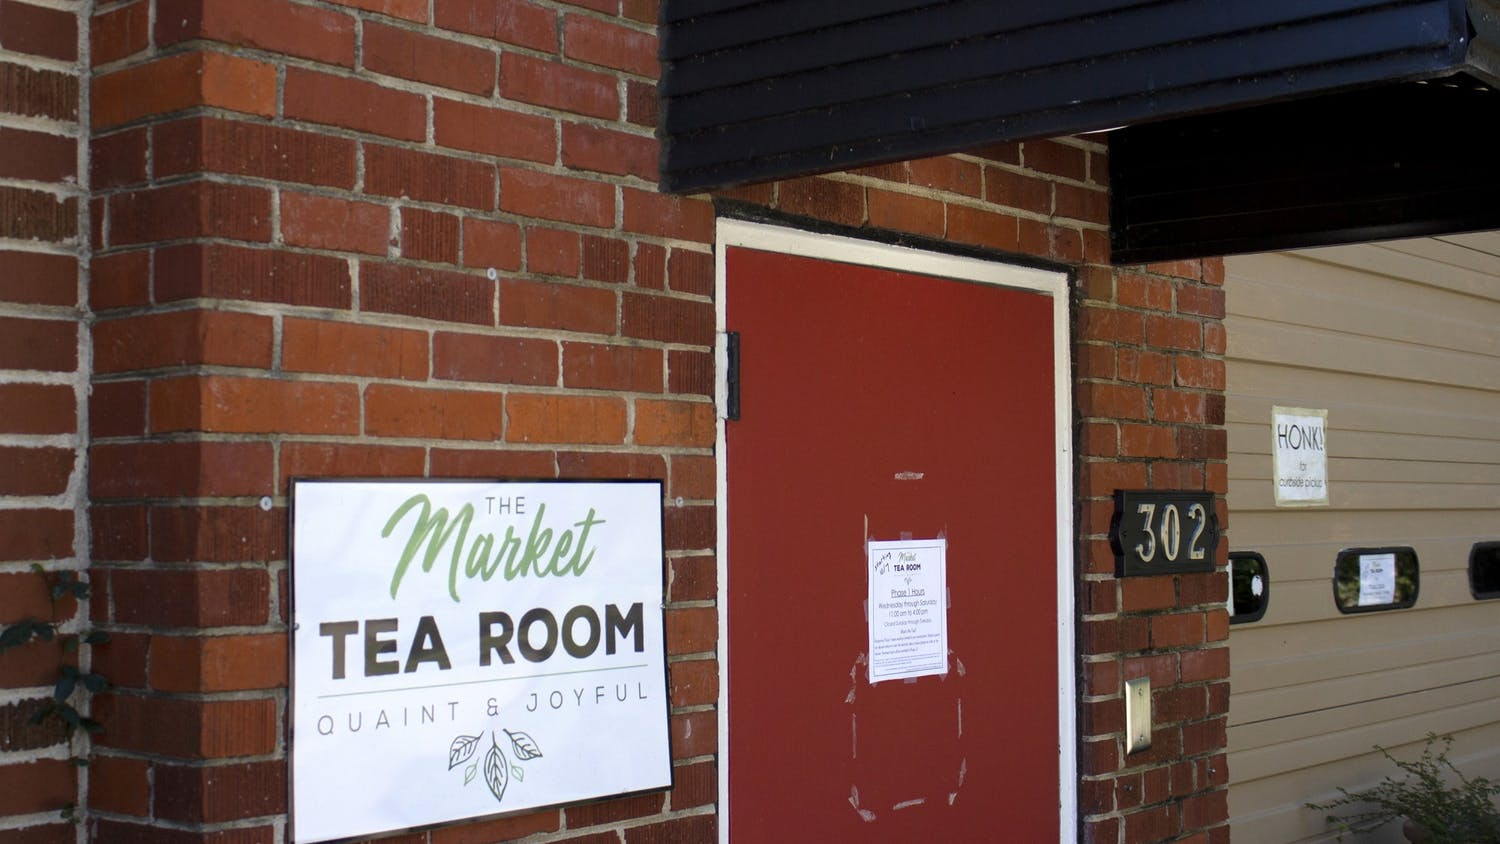 The Market Tea Room sits hidden in a back corner off Senate Street. It is reopening Oct. 7.